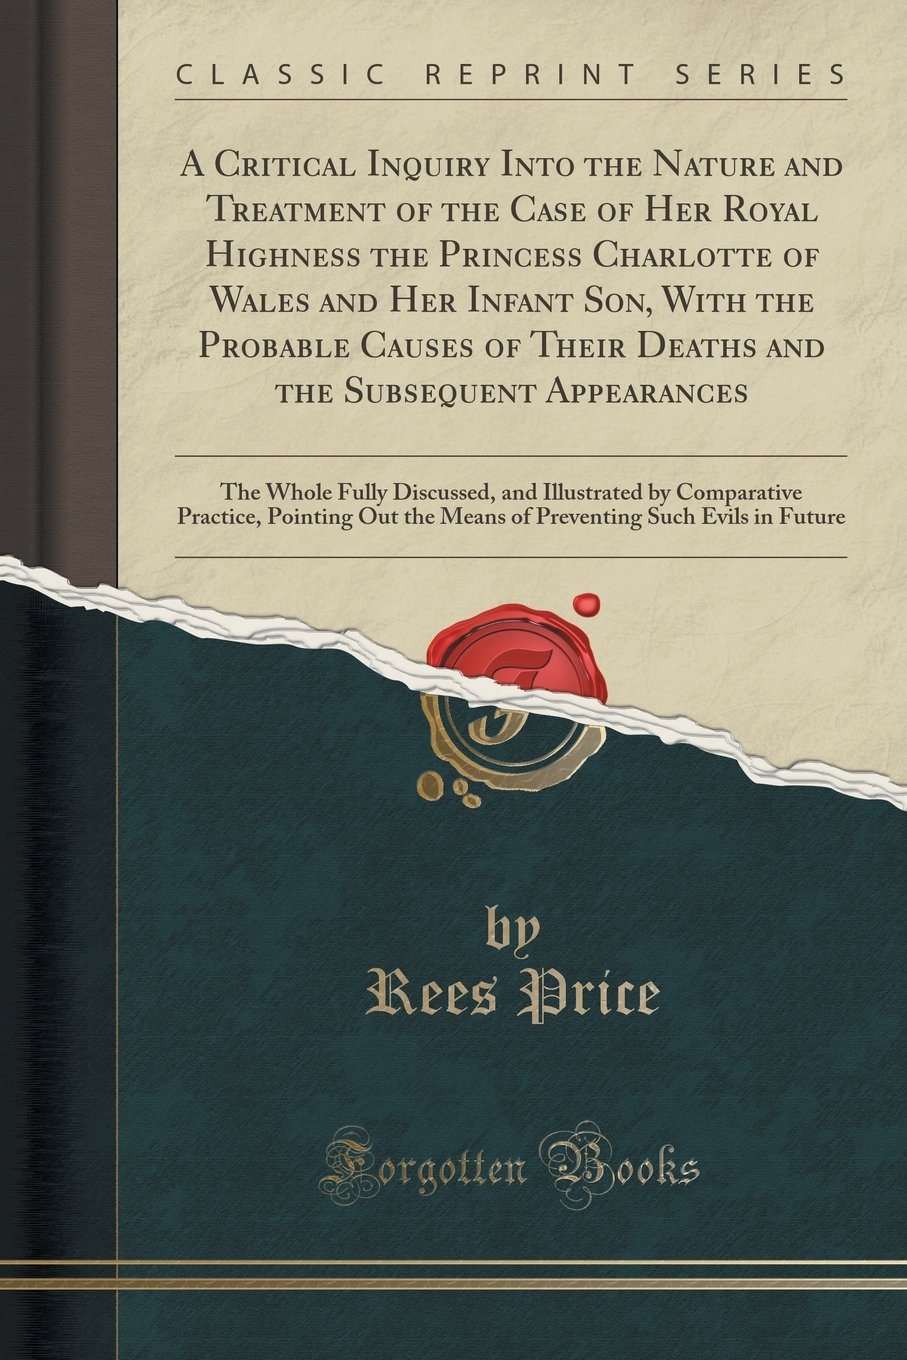 A Critical Inquiry Into the Nature and Treatment of the Case of Her Royal Highness the Princess Charlotte of Wales and Her Infant Son, With the ... Whole Fully Discussed, and Illustrated by C PDF